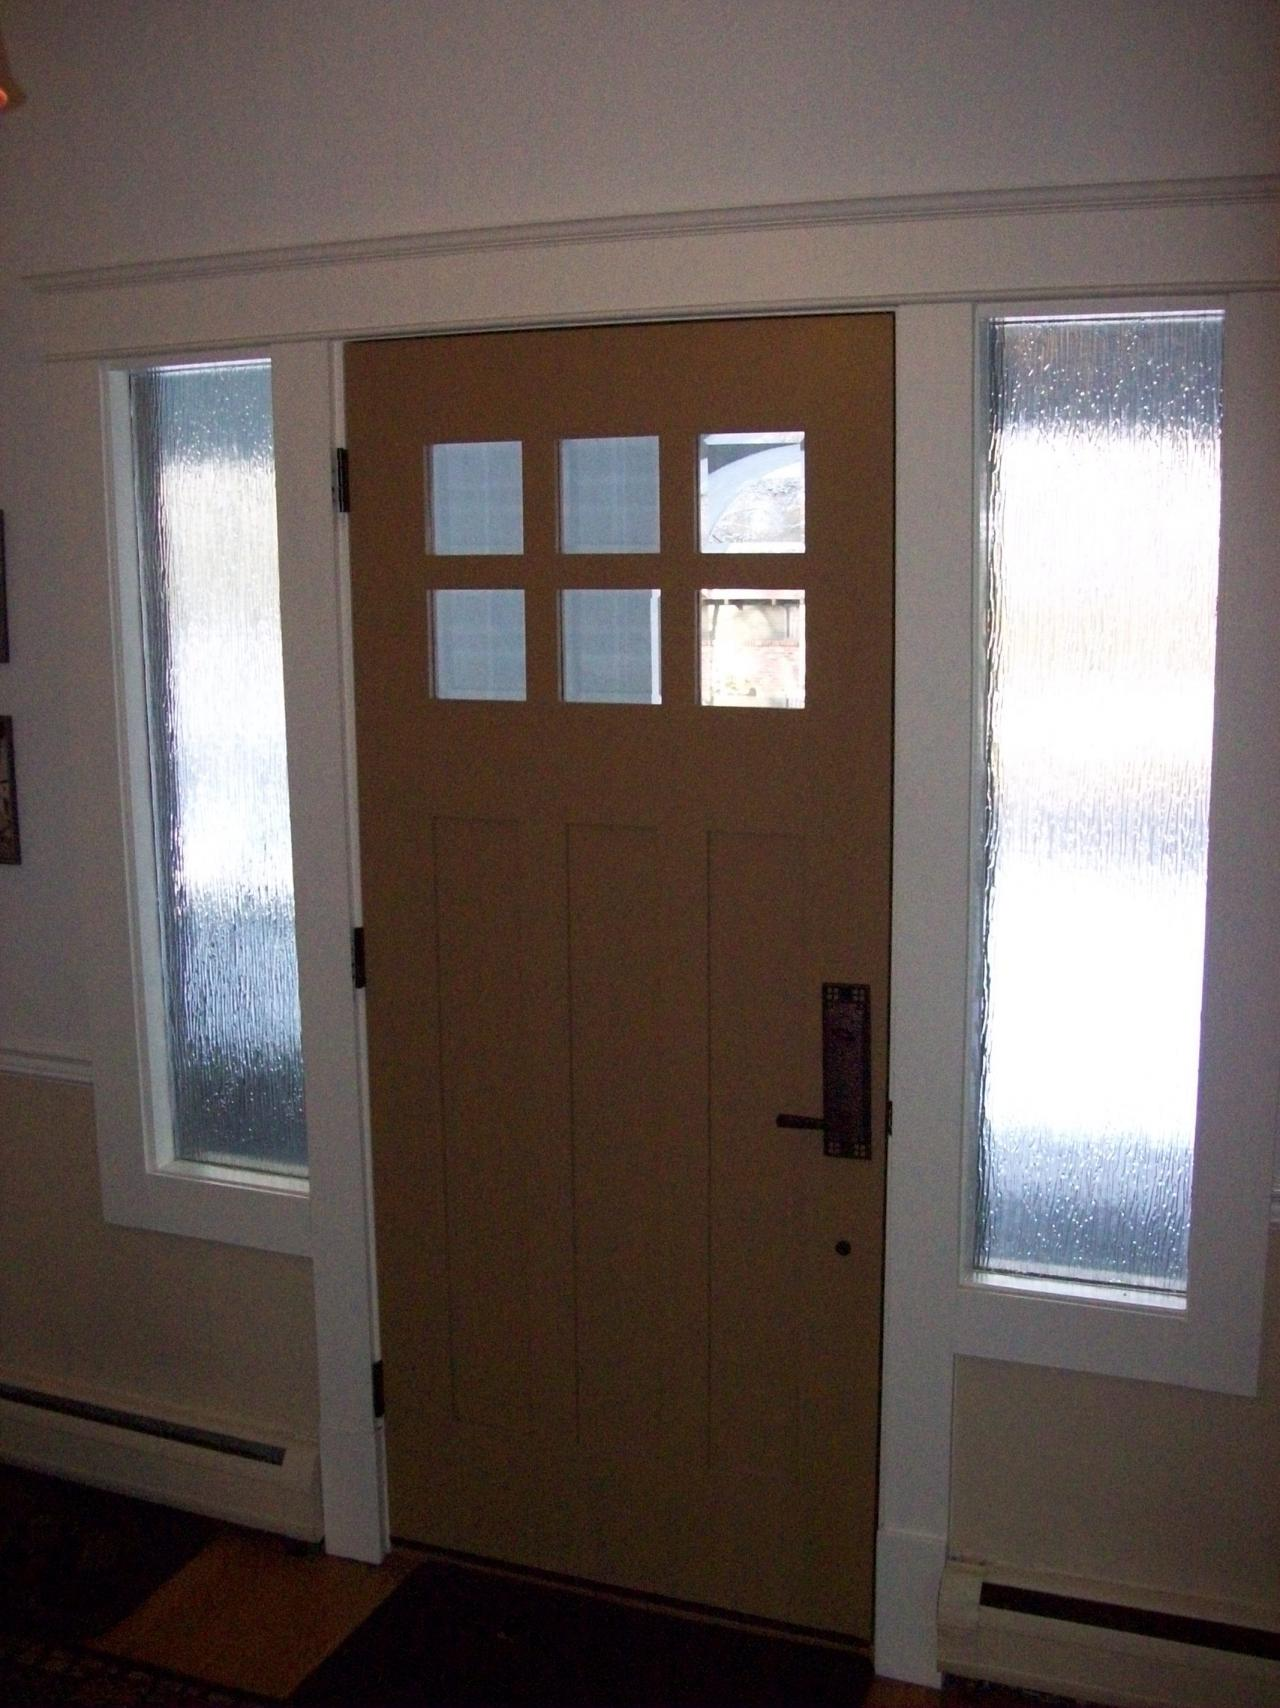 1st impressions more than doors ash entry door ash entry door eventelaan Choice Image